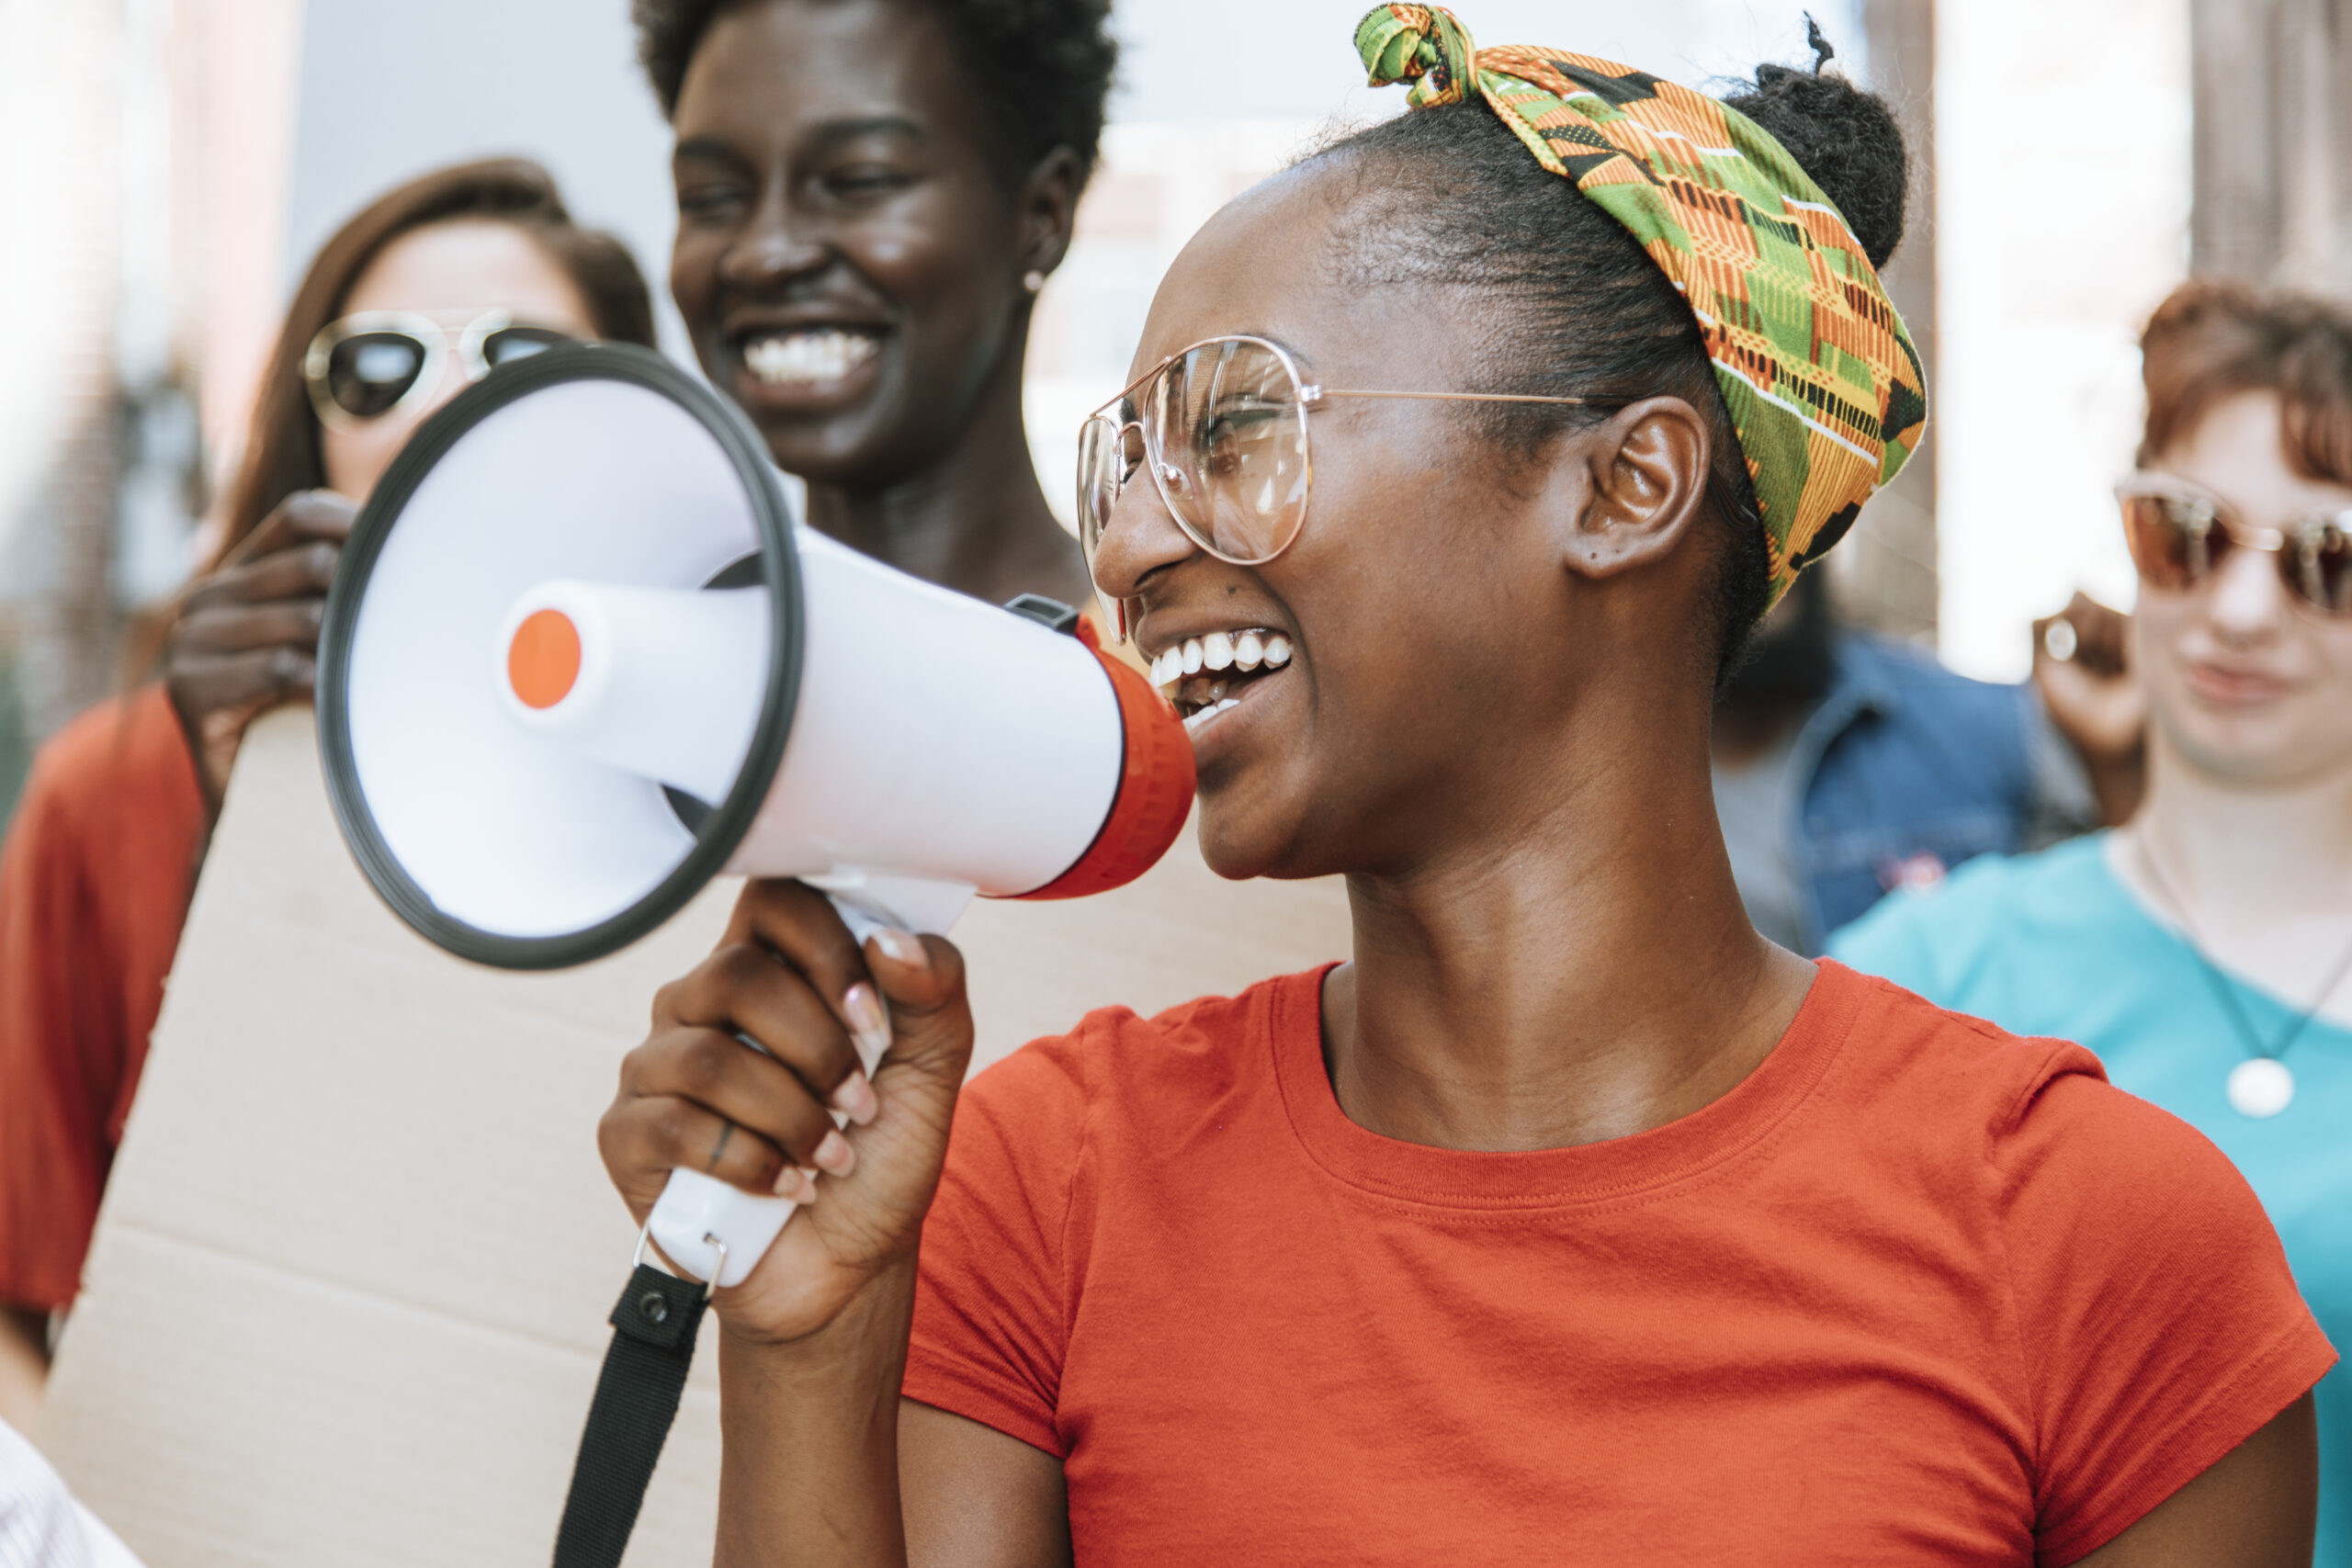 Smiling demonstrator with megaphone